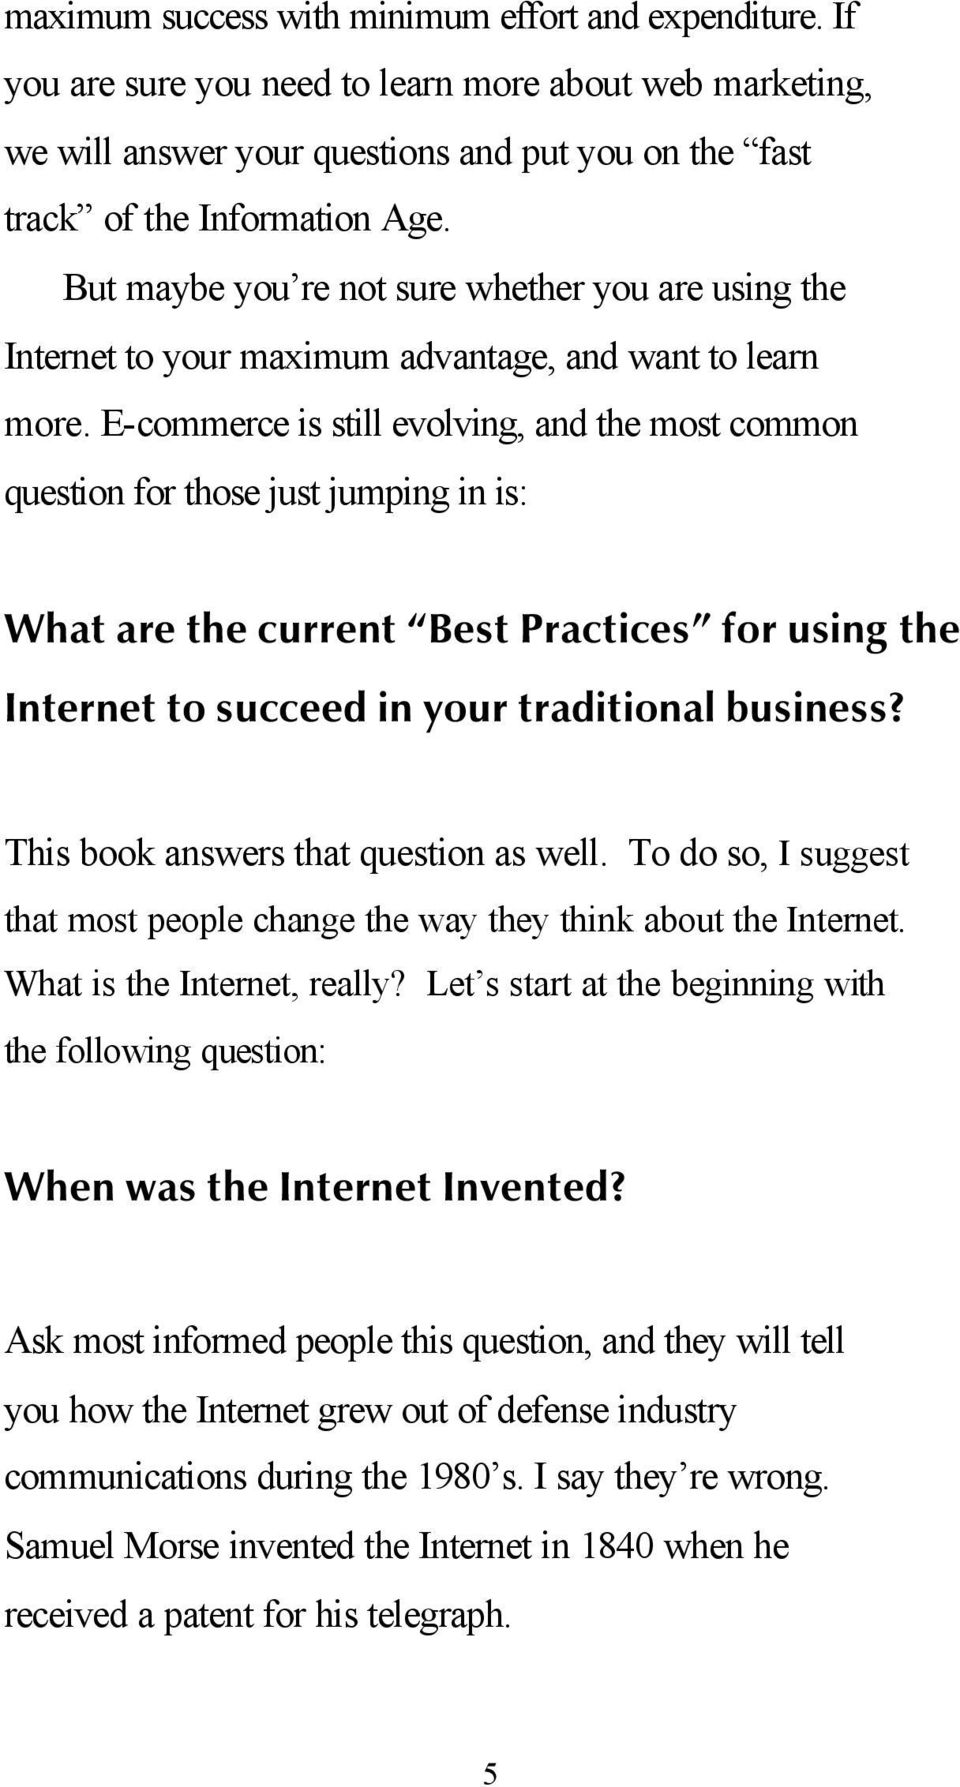 E-commerce is still evolving, and the most common question for those just jumping in is: What are the current Best Practices for using the Internet to succeed in your traditional business?